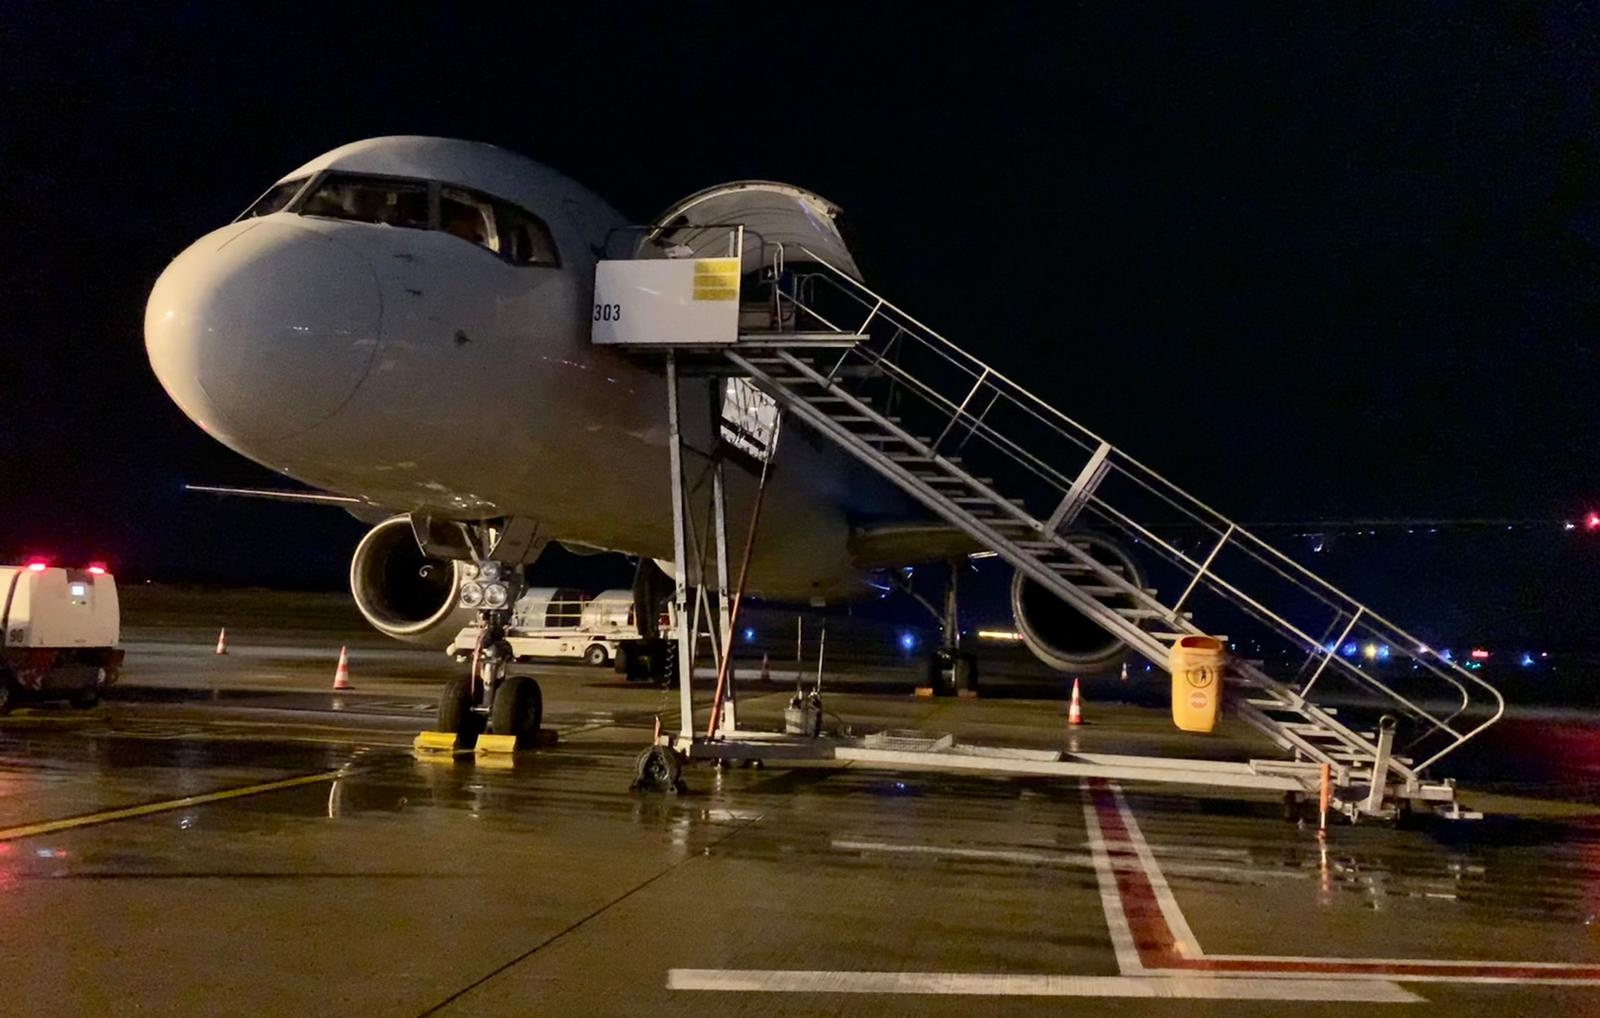 On with the growth: Direct Maintenance opens new line maintenance station in Cologne-Bonn Airport